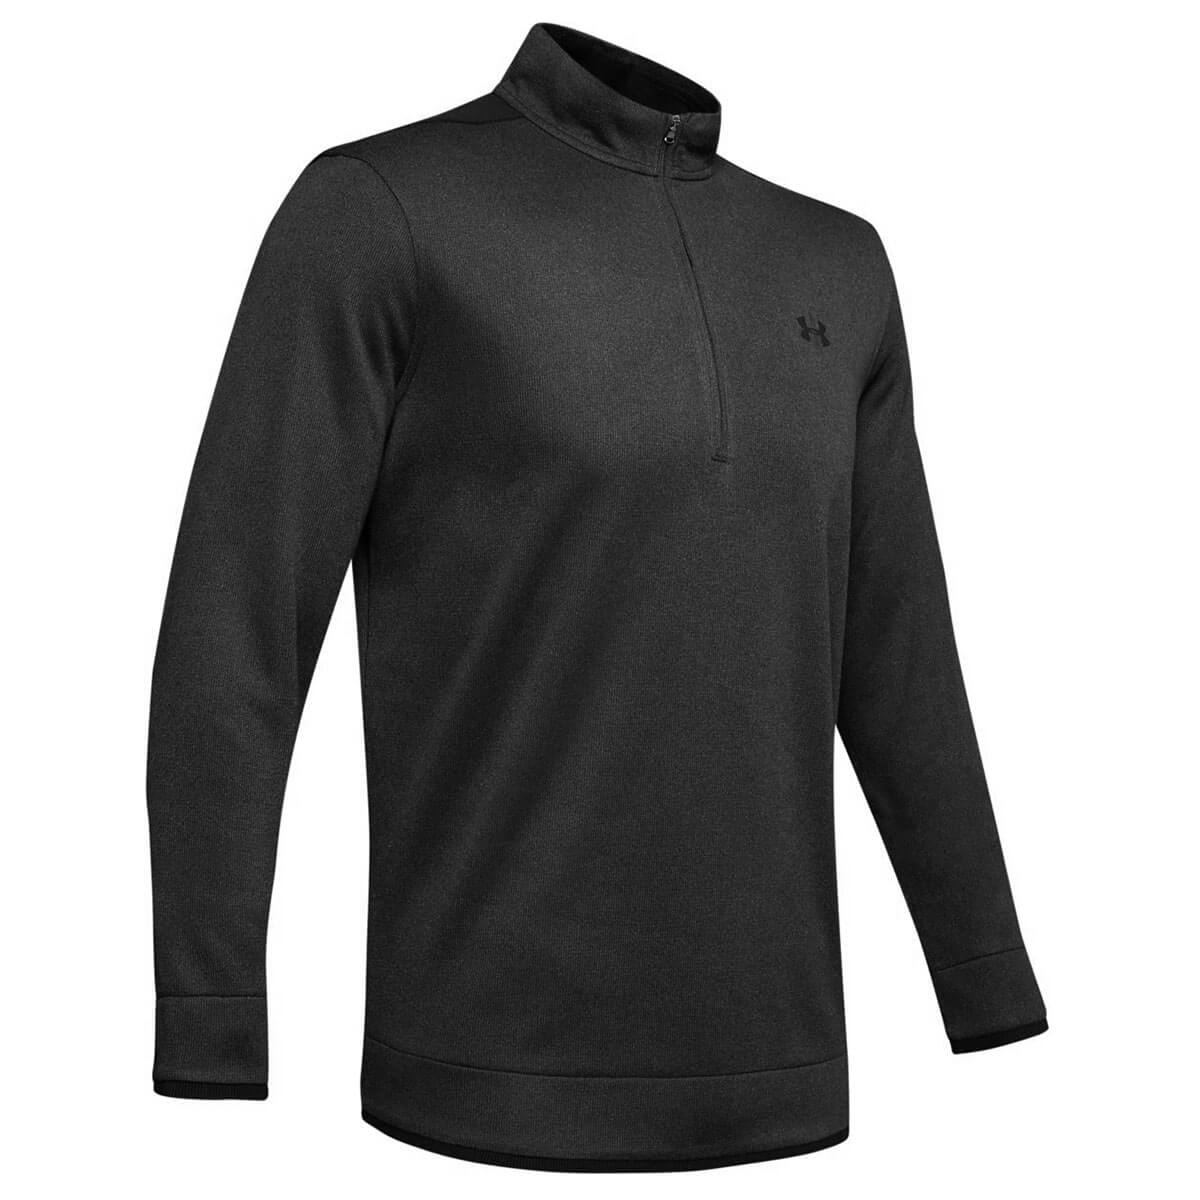 Under-Armour-Homme-UA-sweaterfleece-1-2-zip-resistant-a-l-039-eau-Pullover-40-OFF-RRP miniature 15